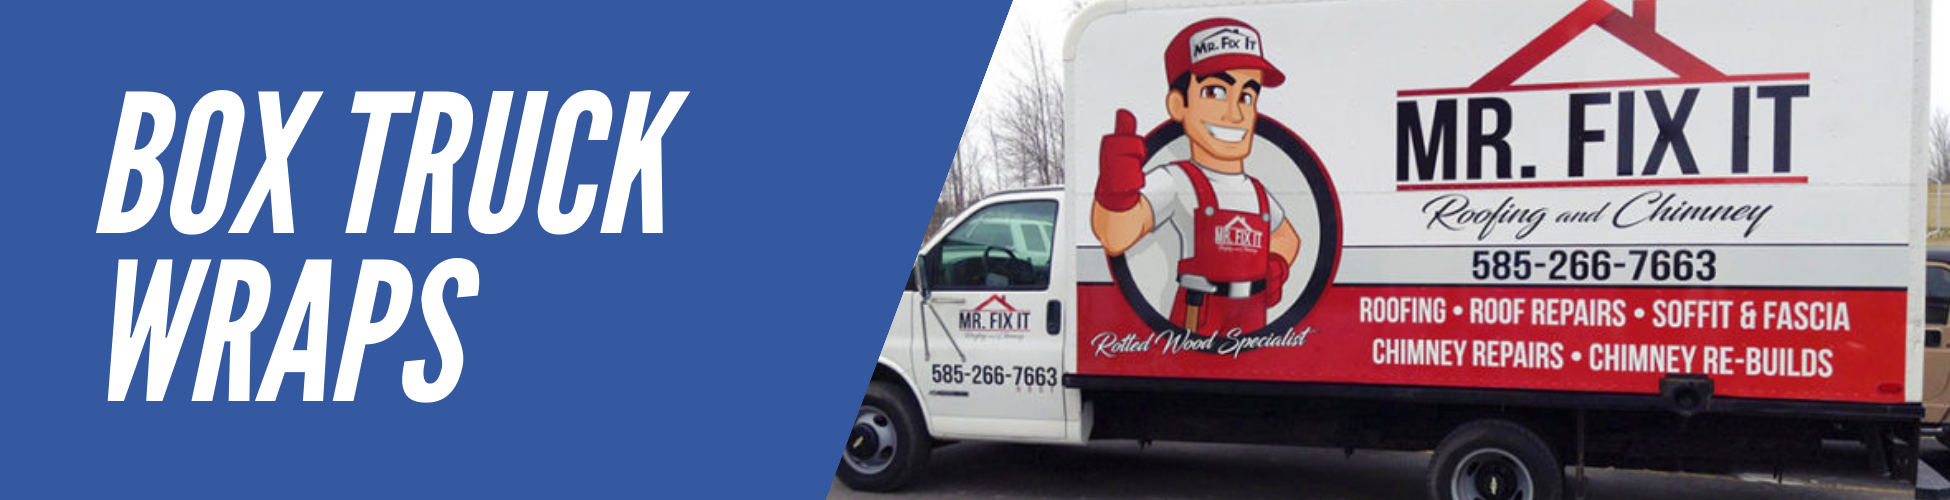 box-truck-wraps-banner-v3.png